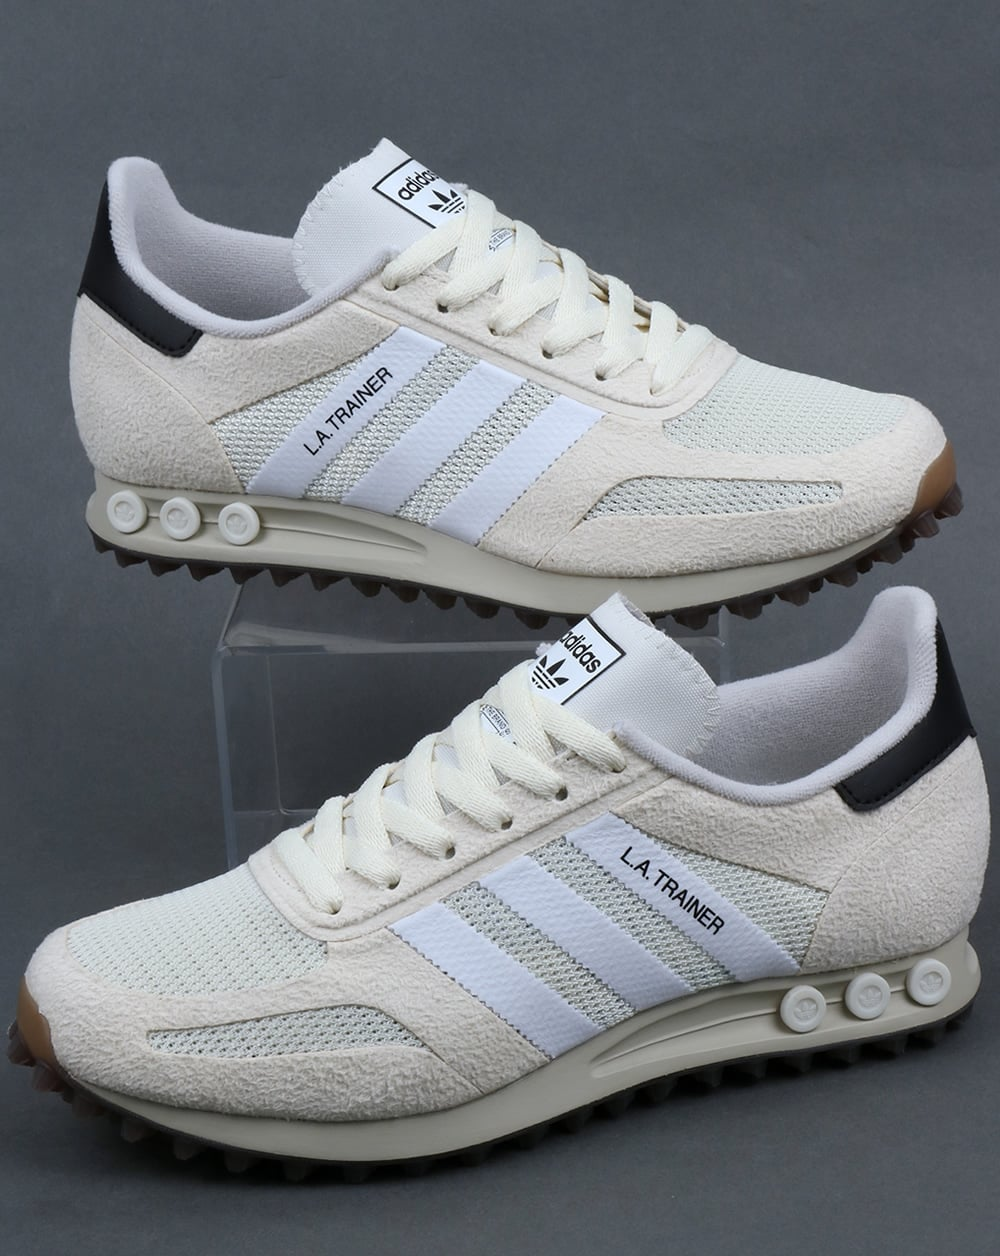 Adidas La Trainer OG Trainers Off White/White/Gum